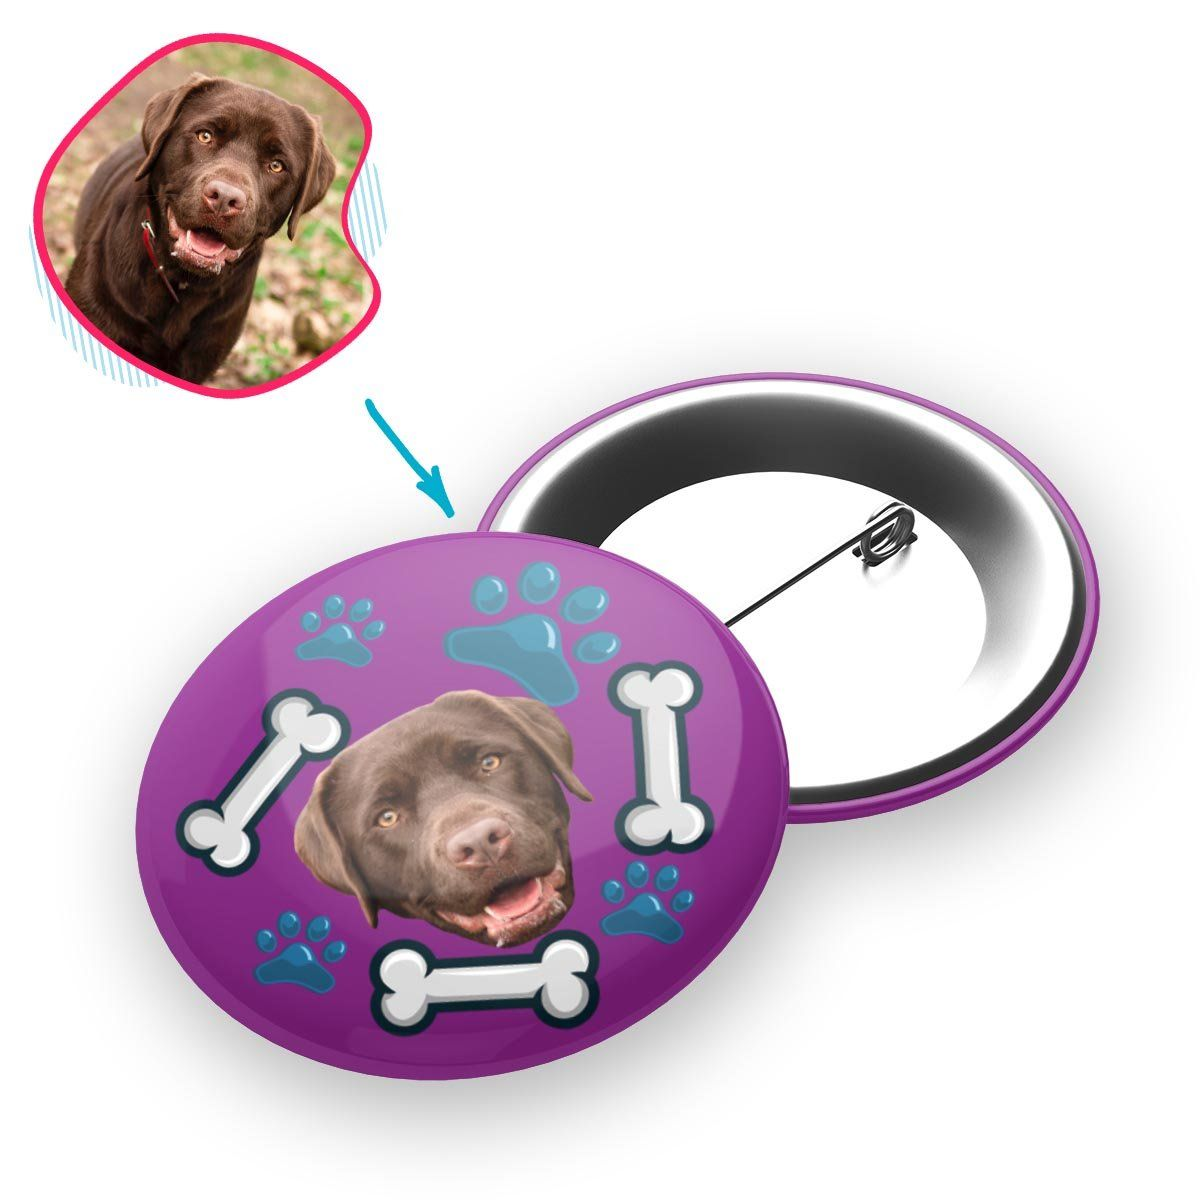 purple Dog pin personalized with photo of face printed on it